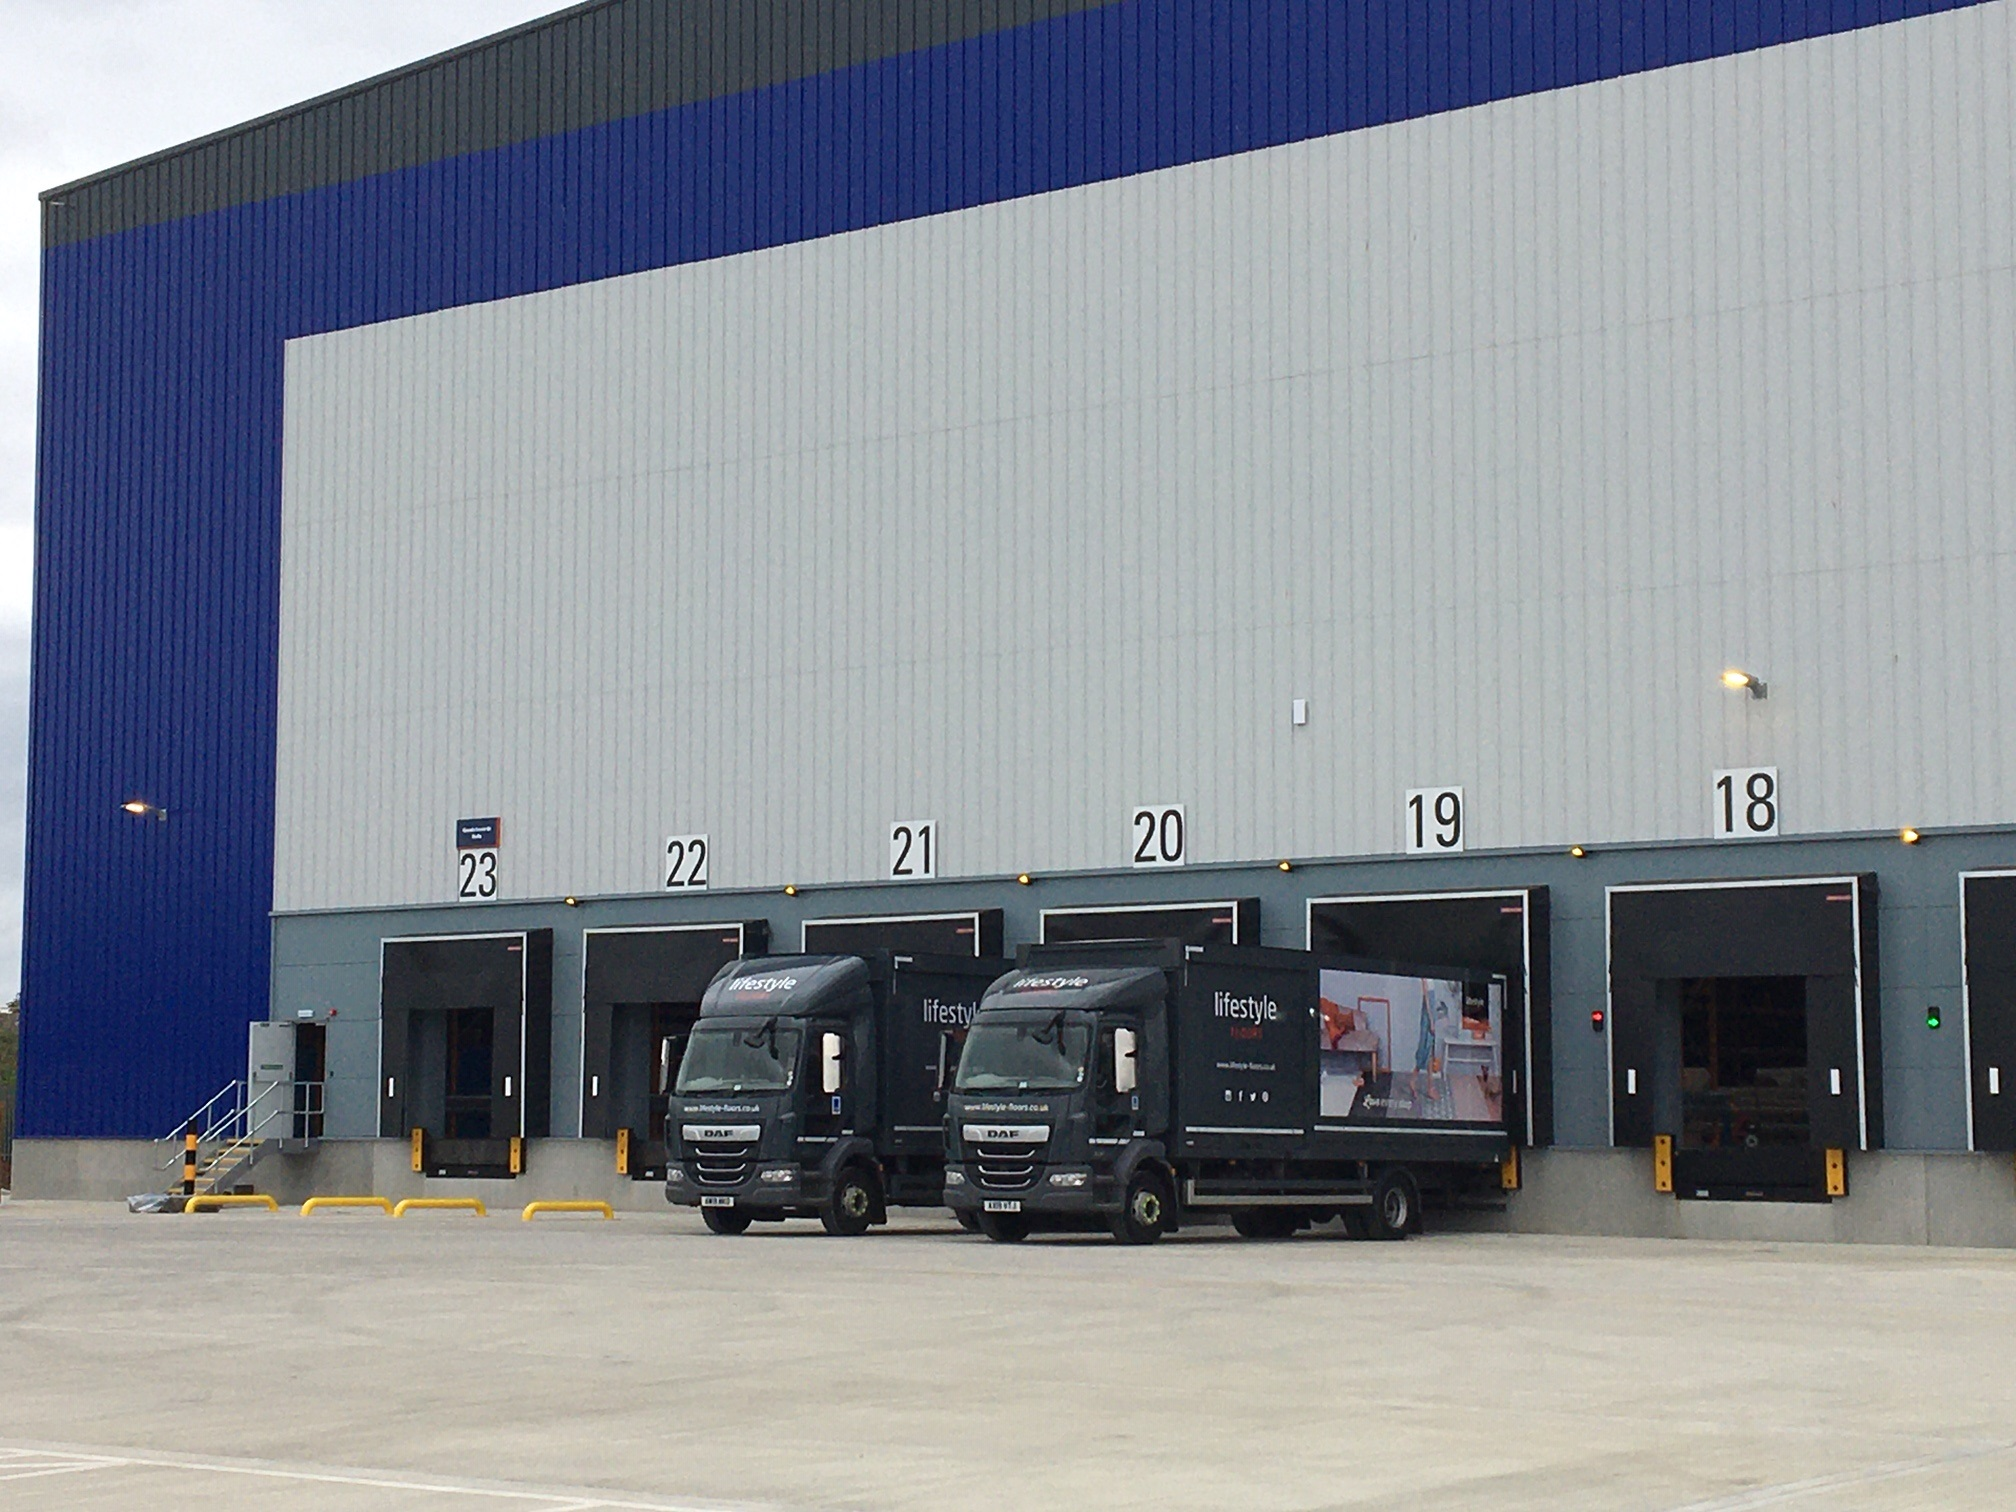 Headlam-External-Loading-Dock-With-Vans-July2020.jpg